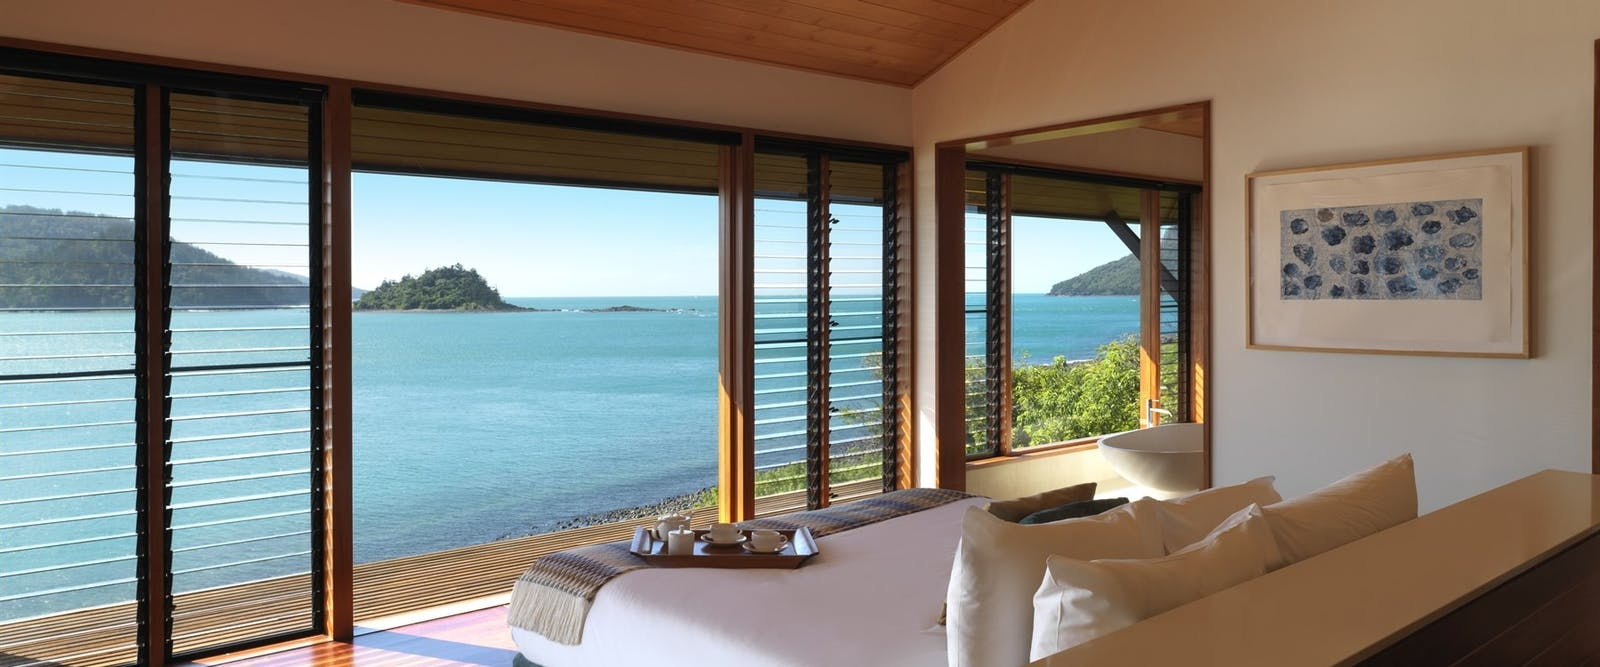 Beautiful bedroom view, qualia, hamilton island